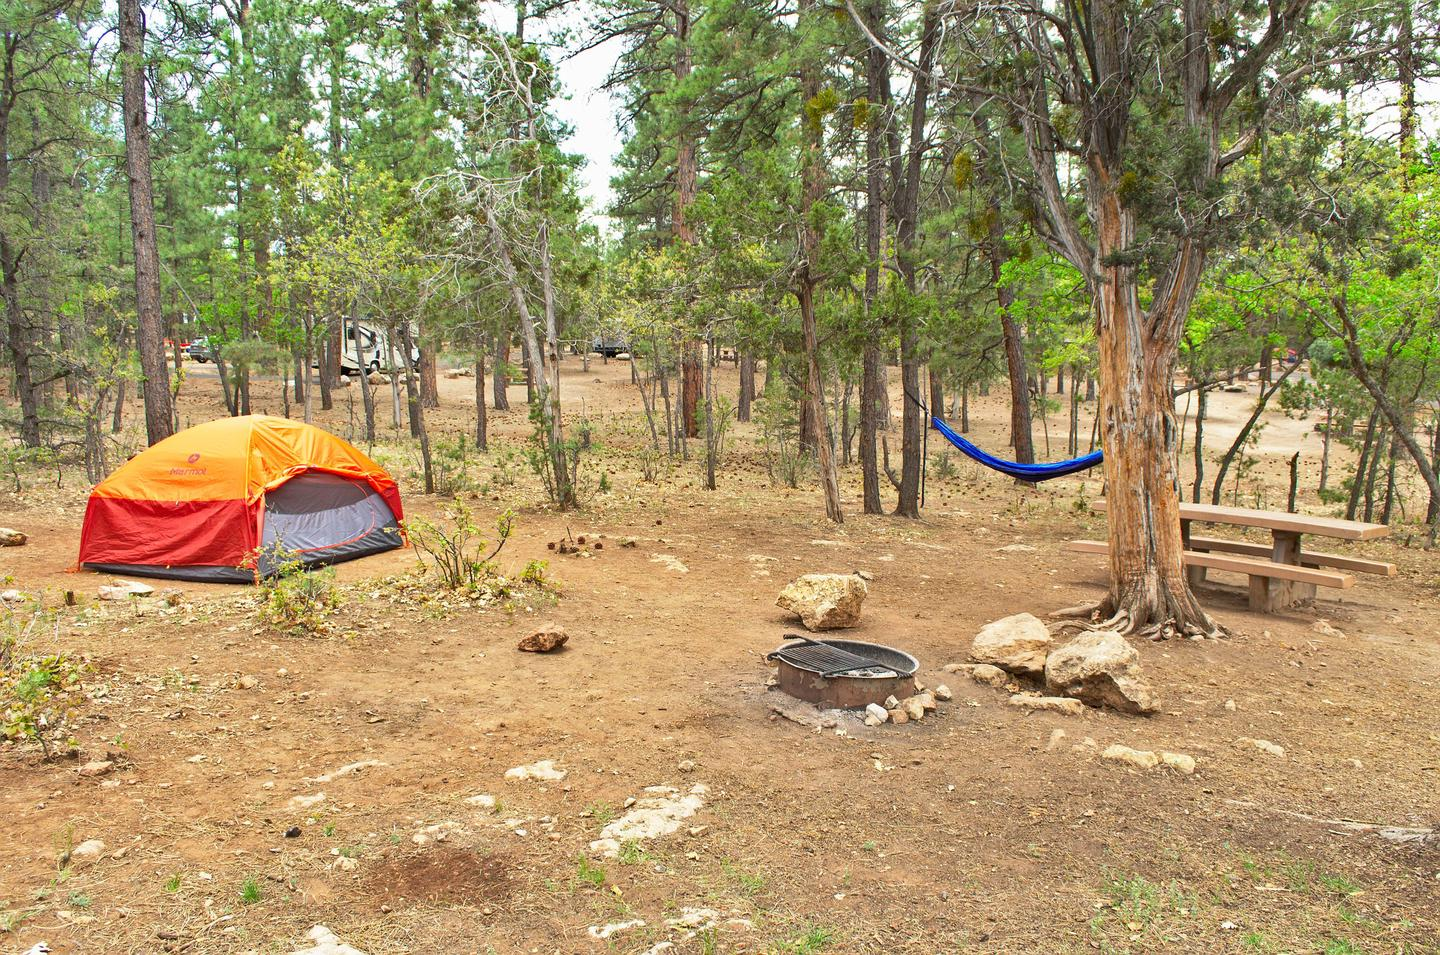 Picnic table, fire pit, tent, and hammock, Mather Campground